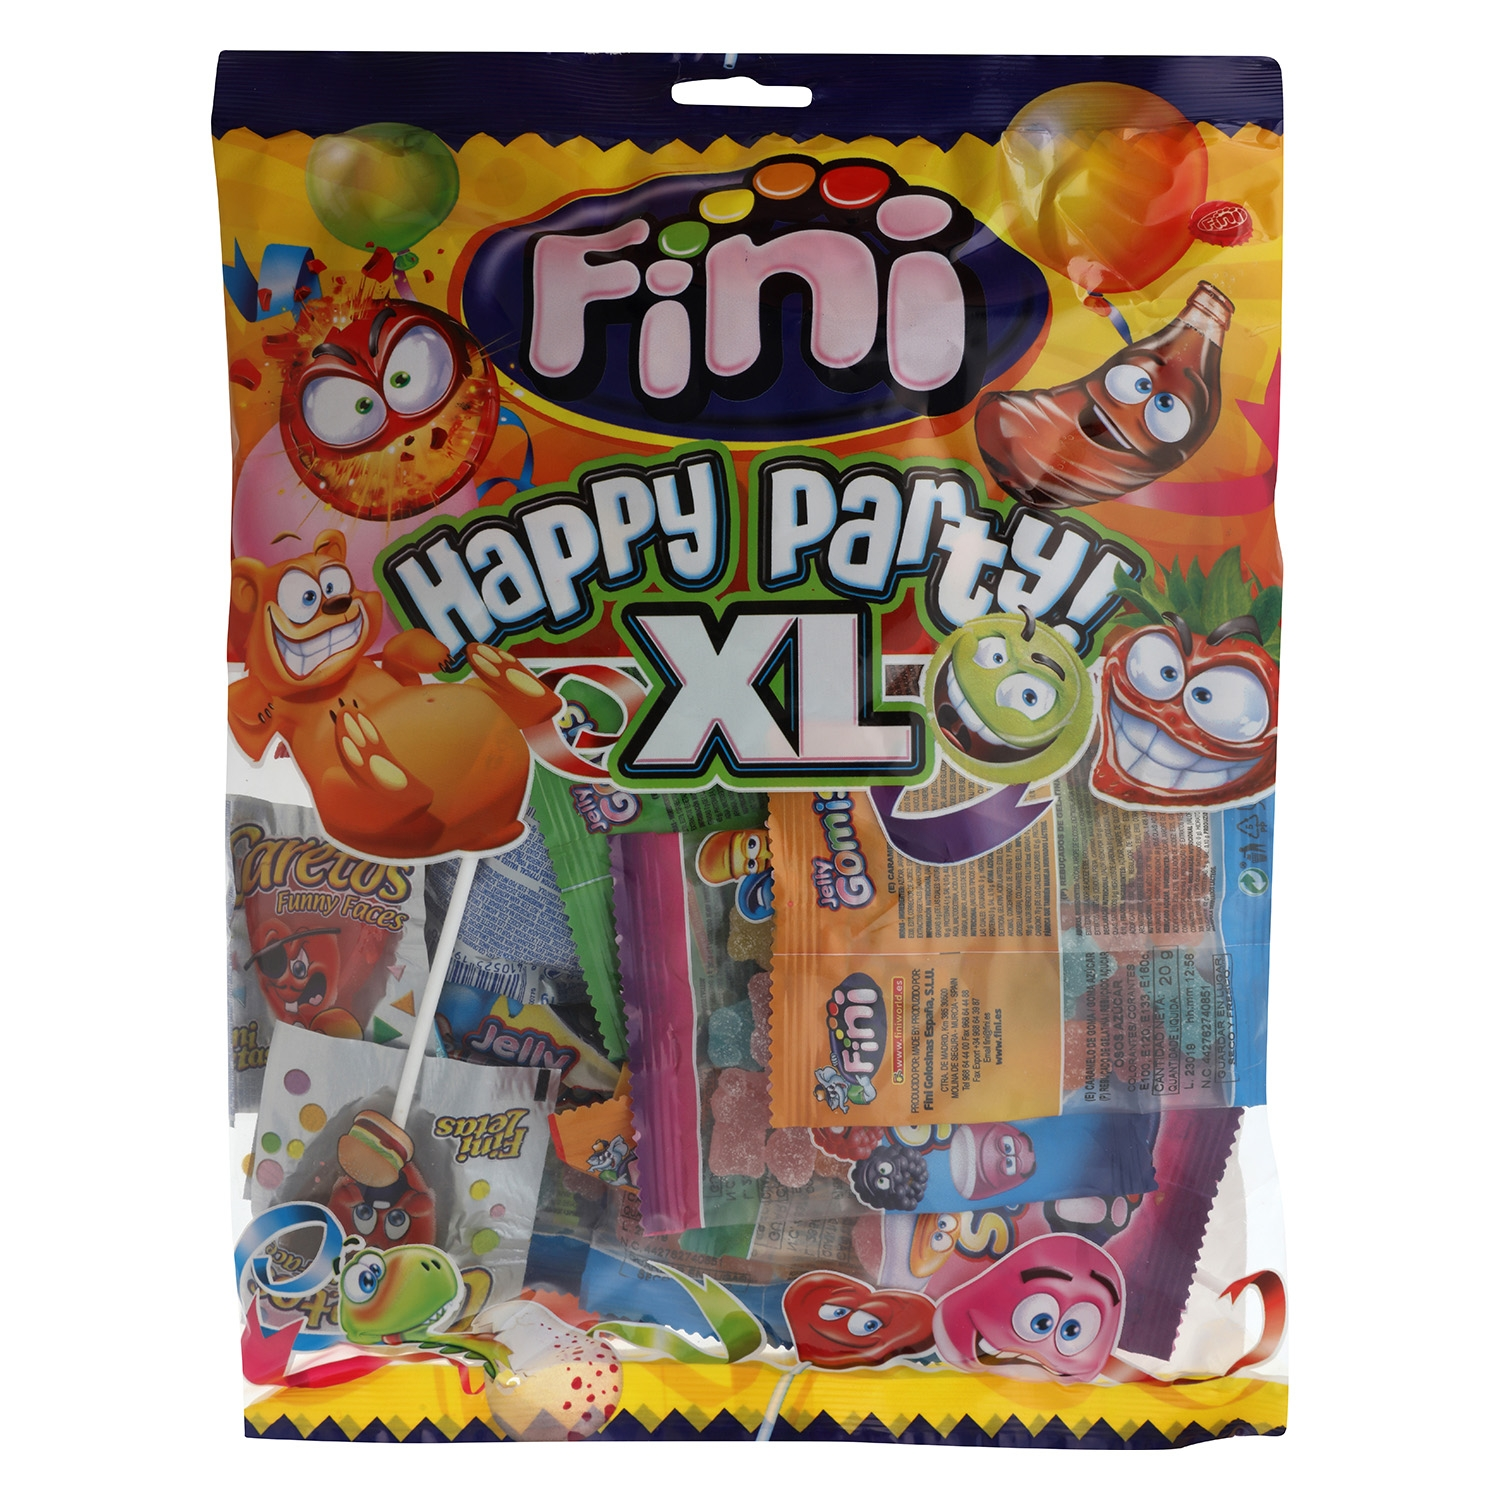 Caramelos de goma Happy Party